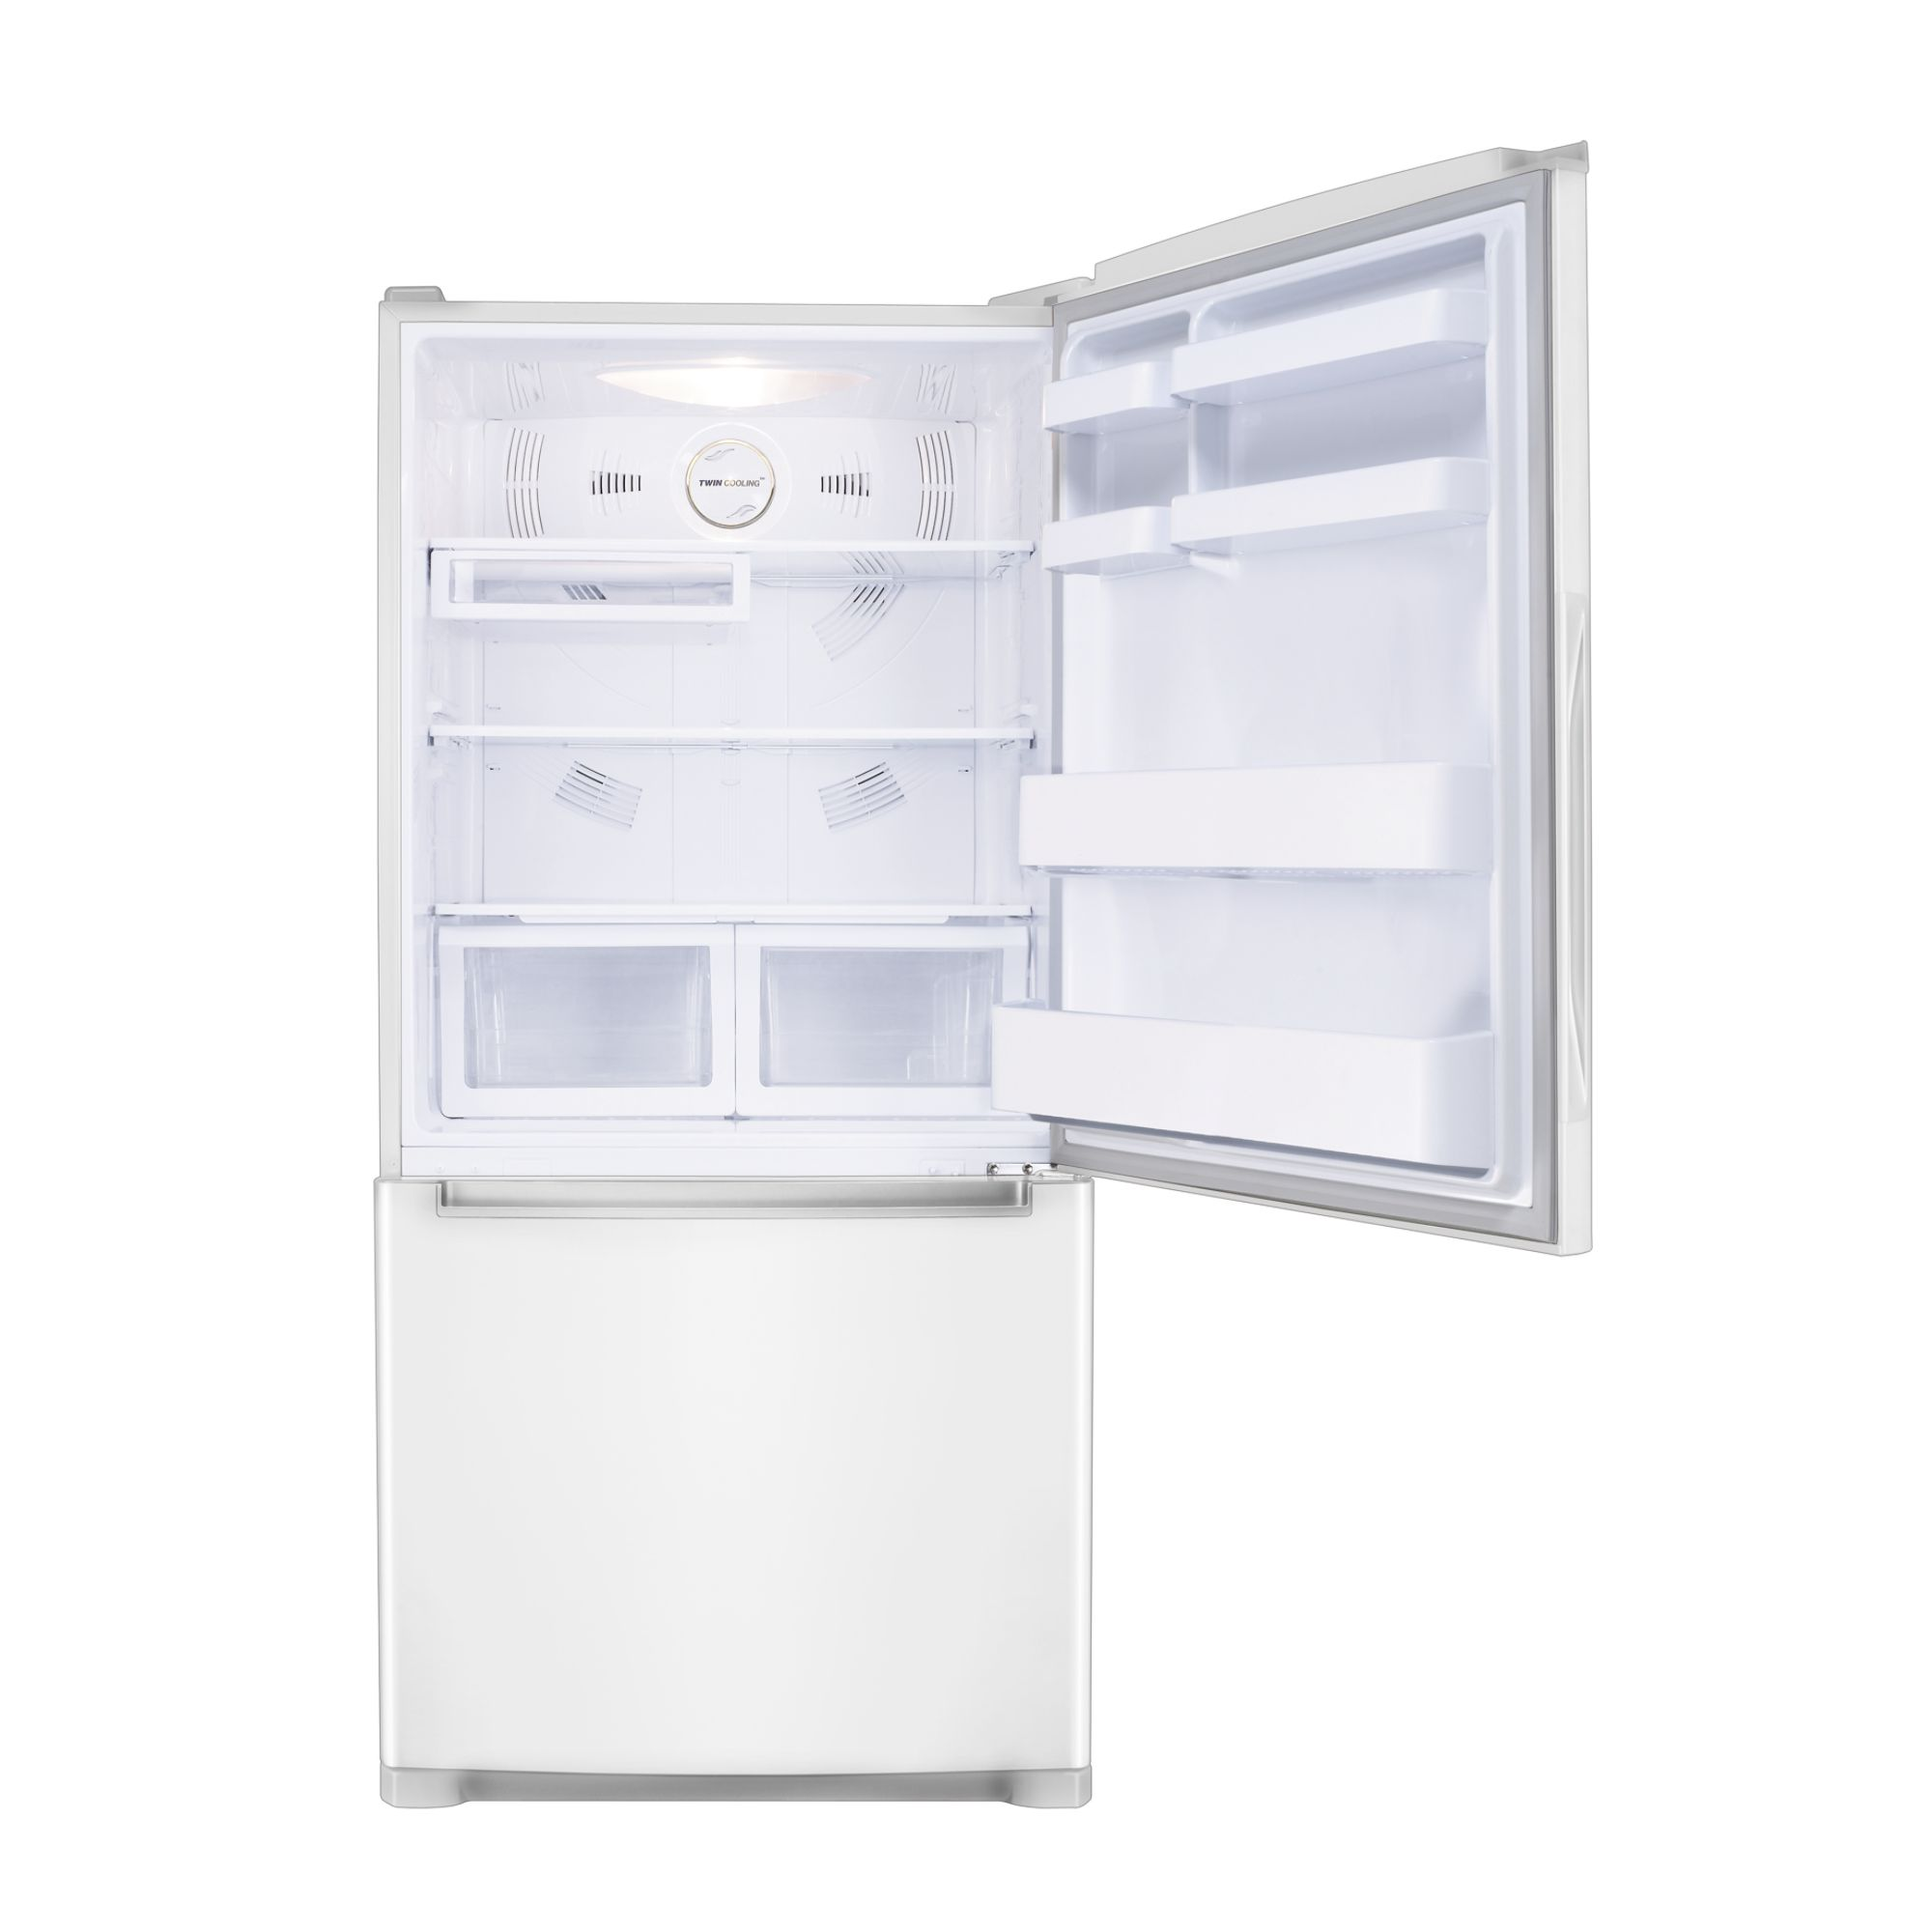 Samsung 20 cu. ft. Bottom Freezer with Side Swing Freezer Door - White